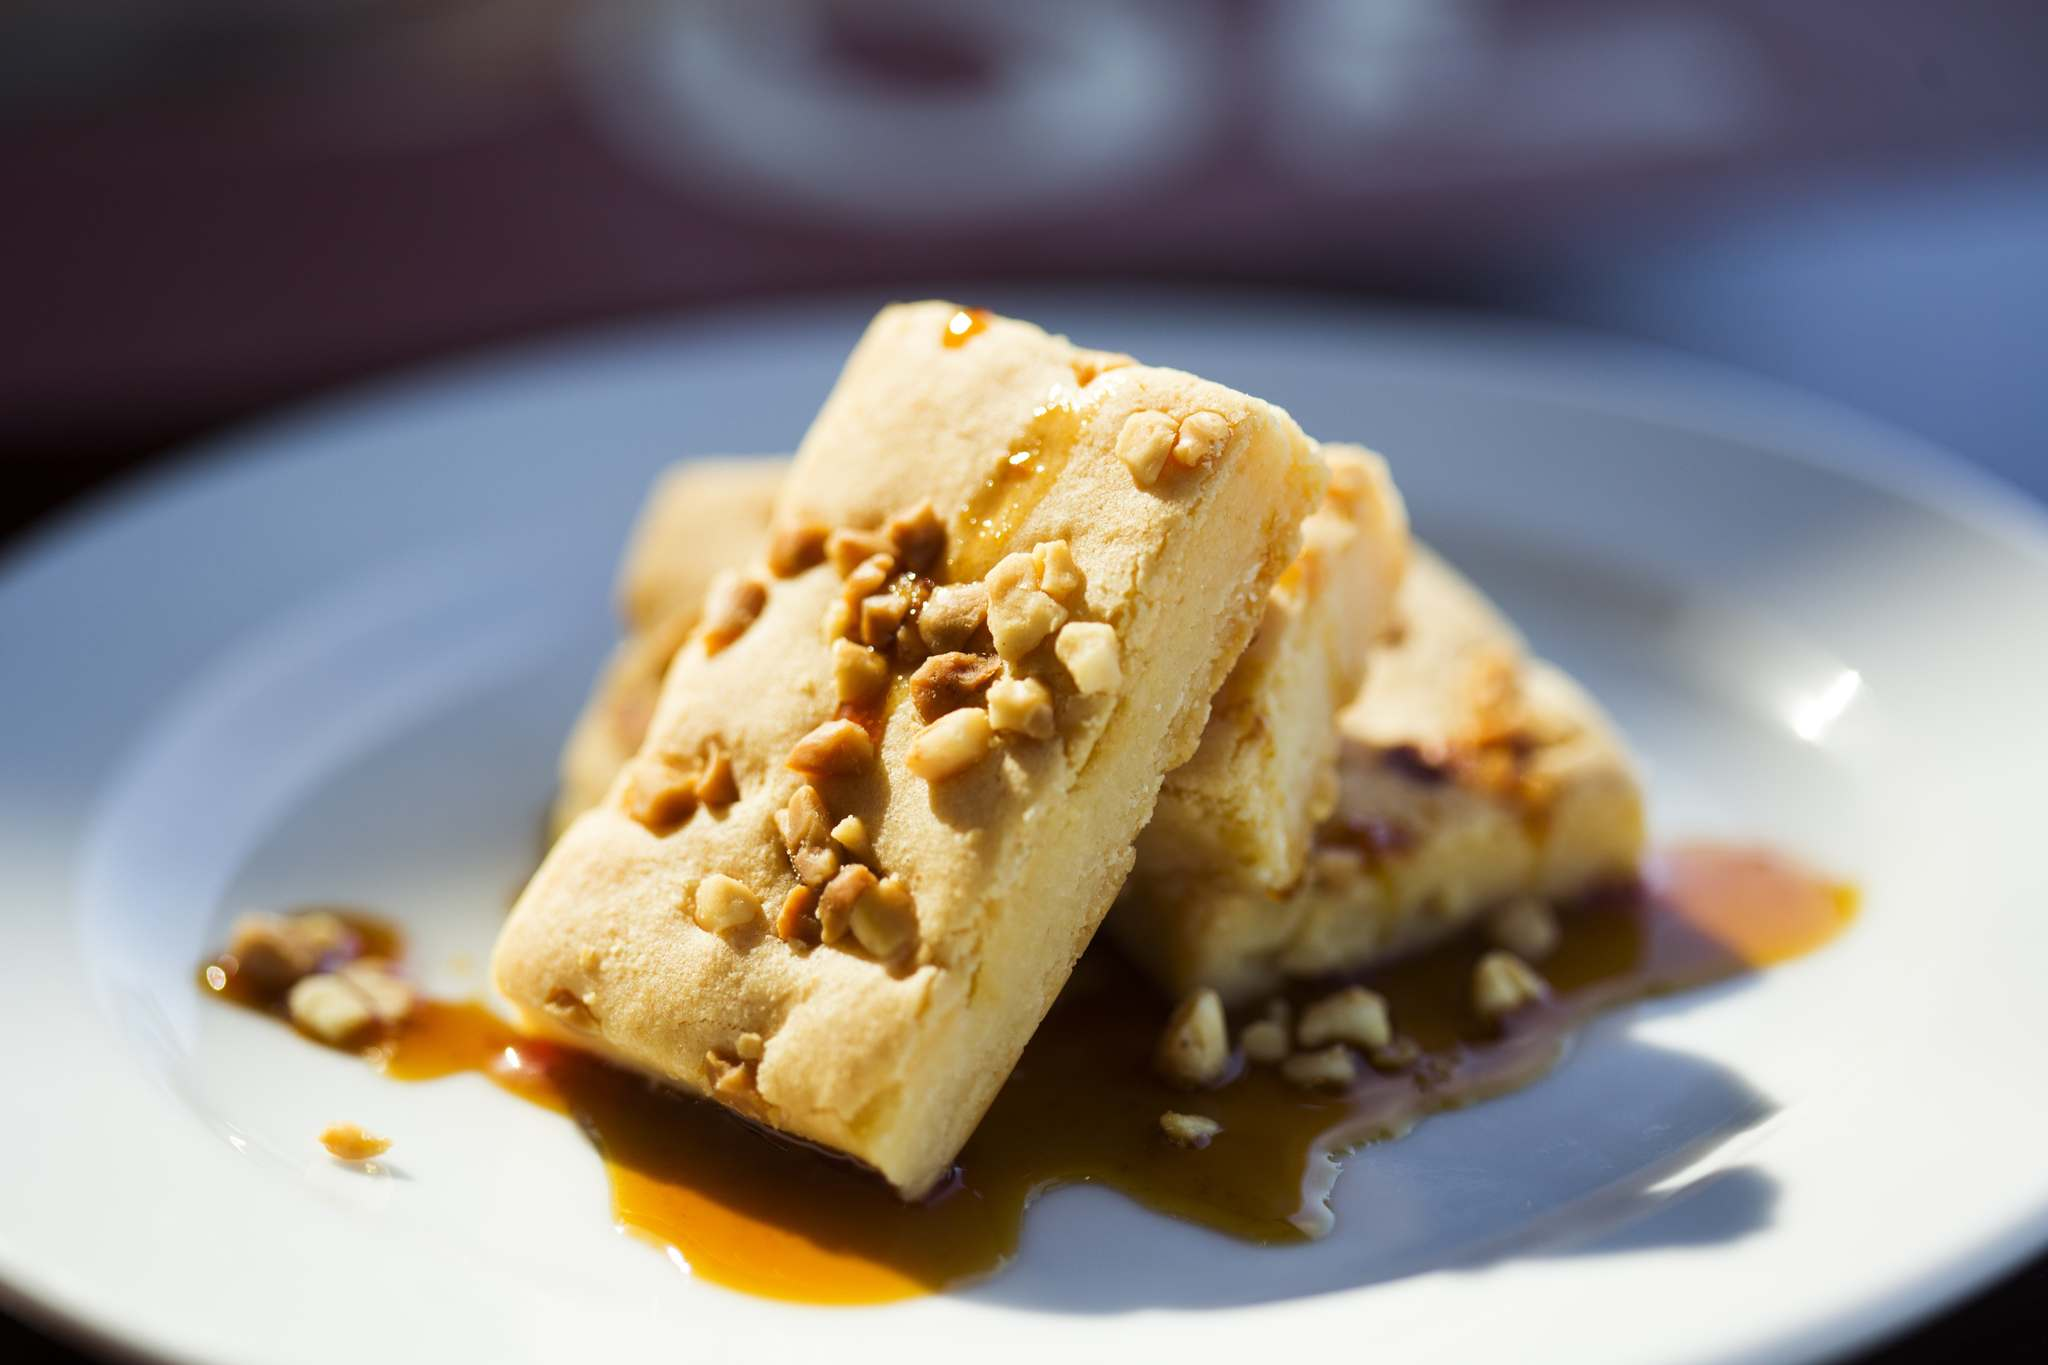 The caramel bars are soft, sweet comfort food brought in from the Philippines.